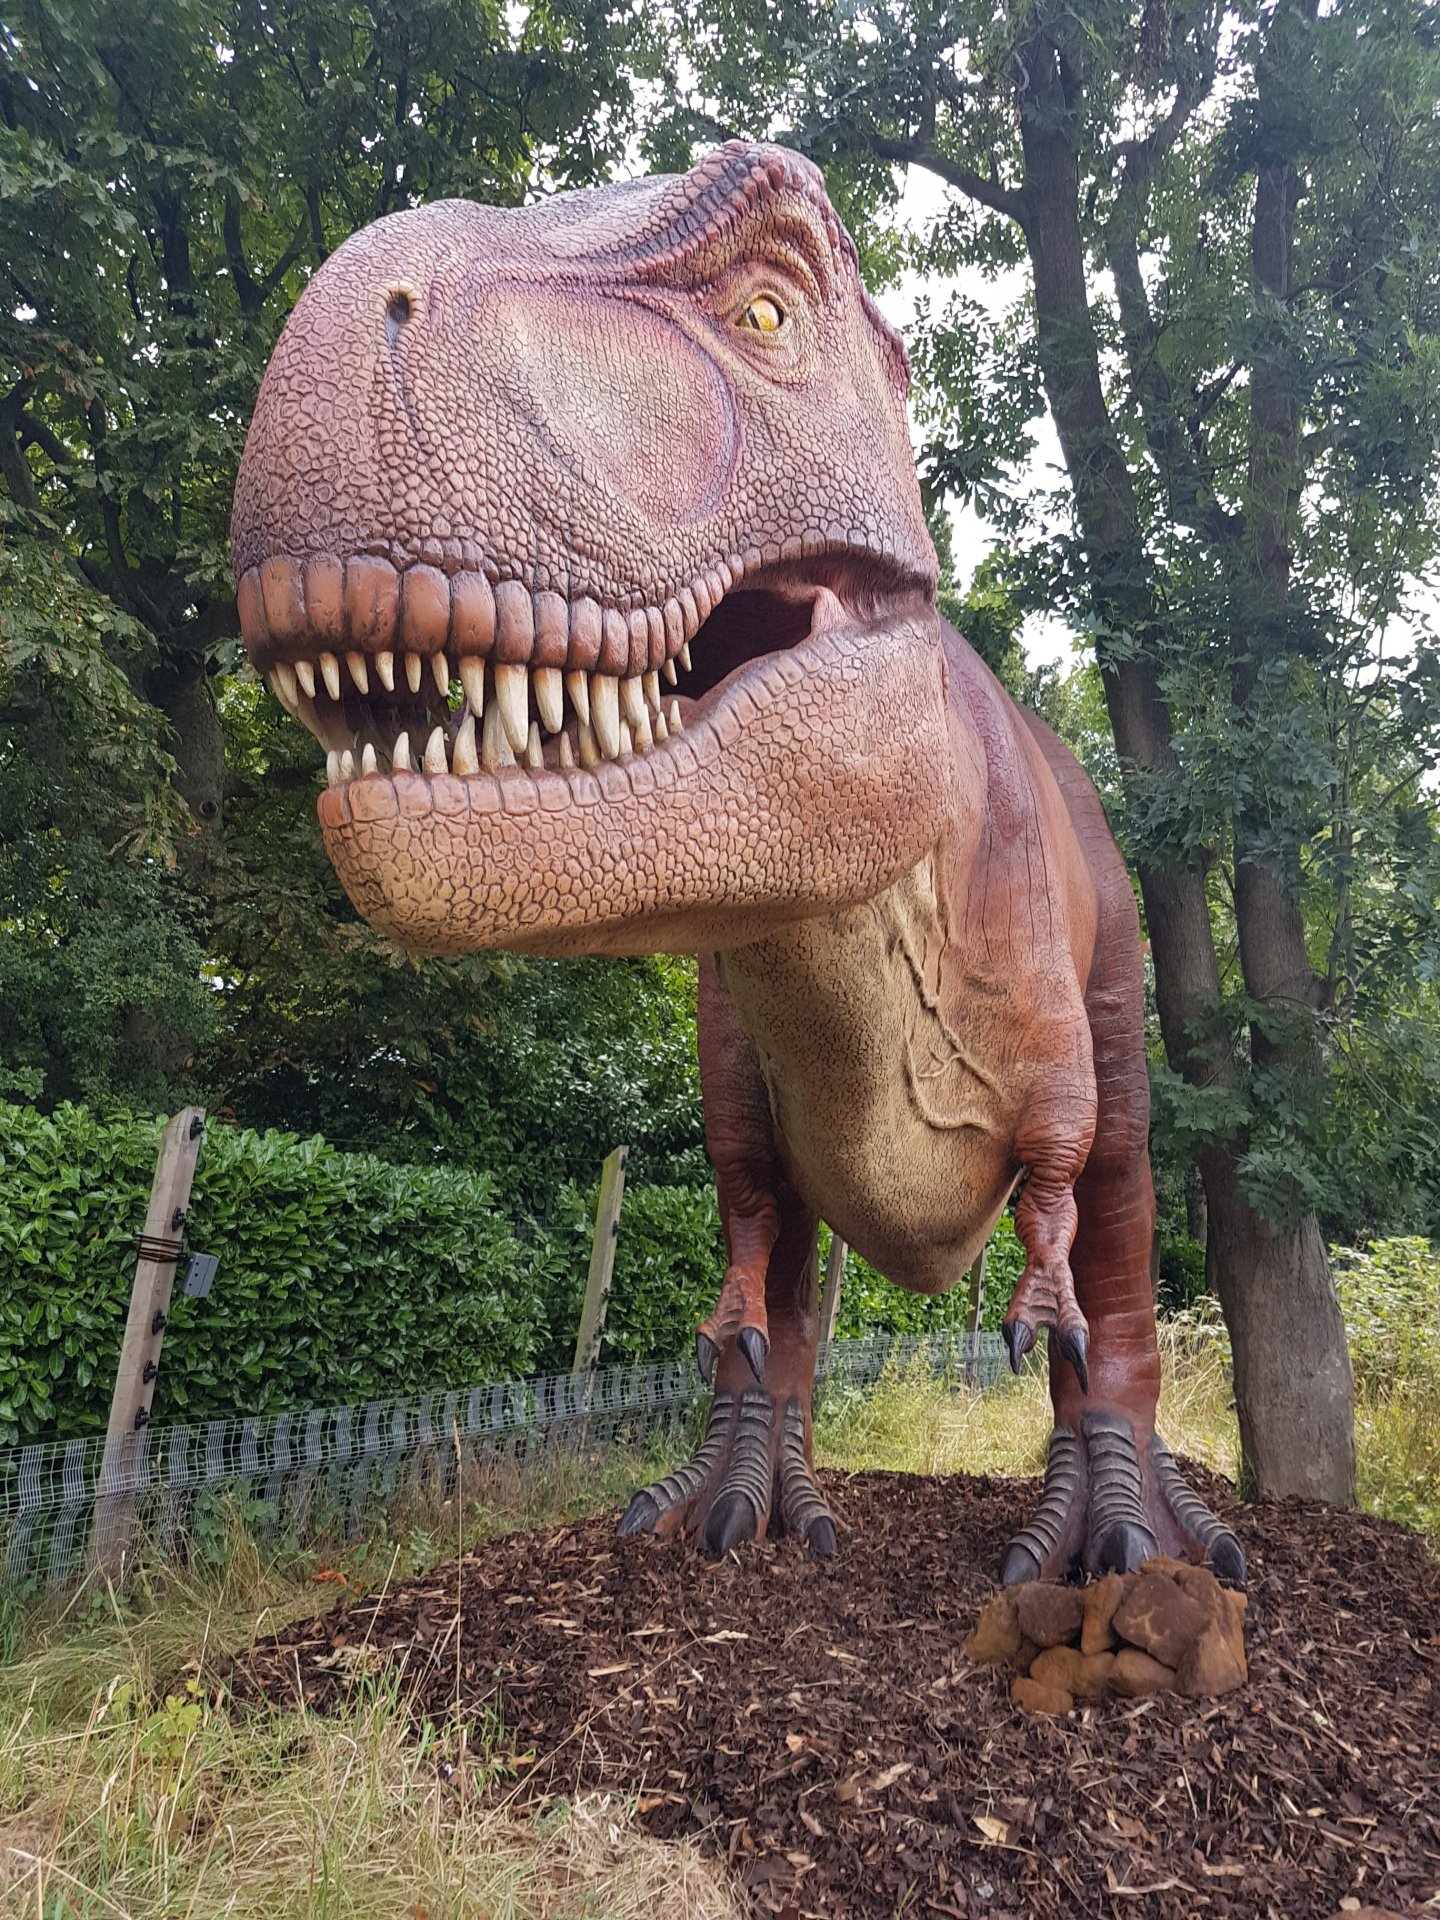 Zoorassic Park (London Zoo)